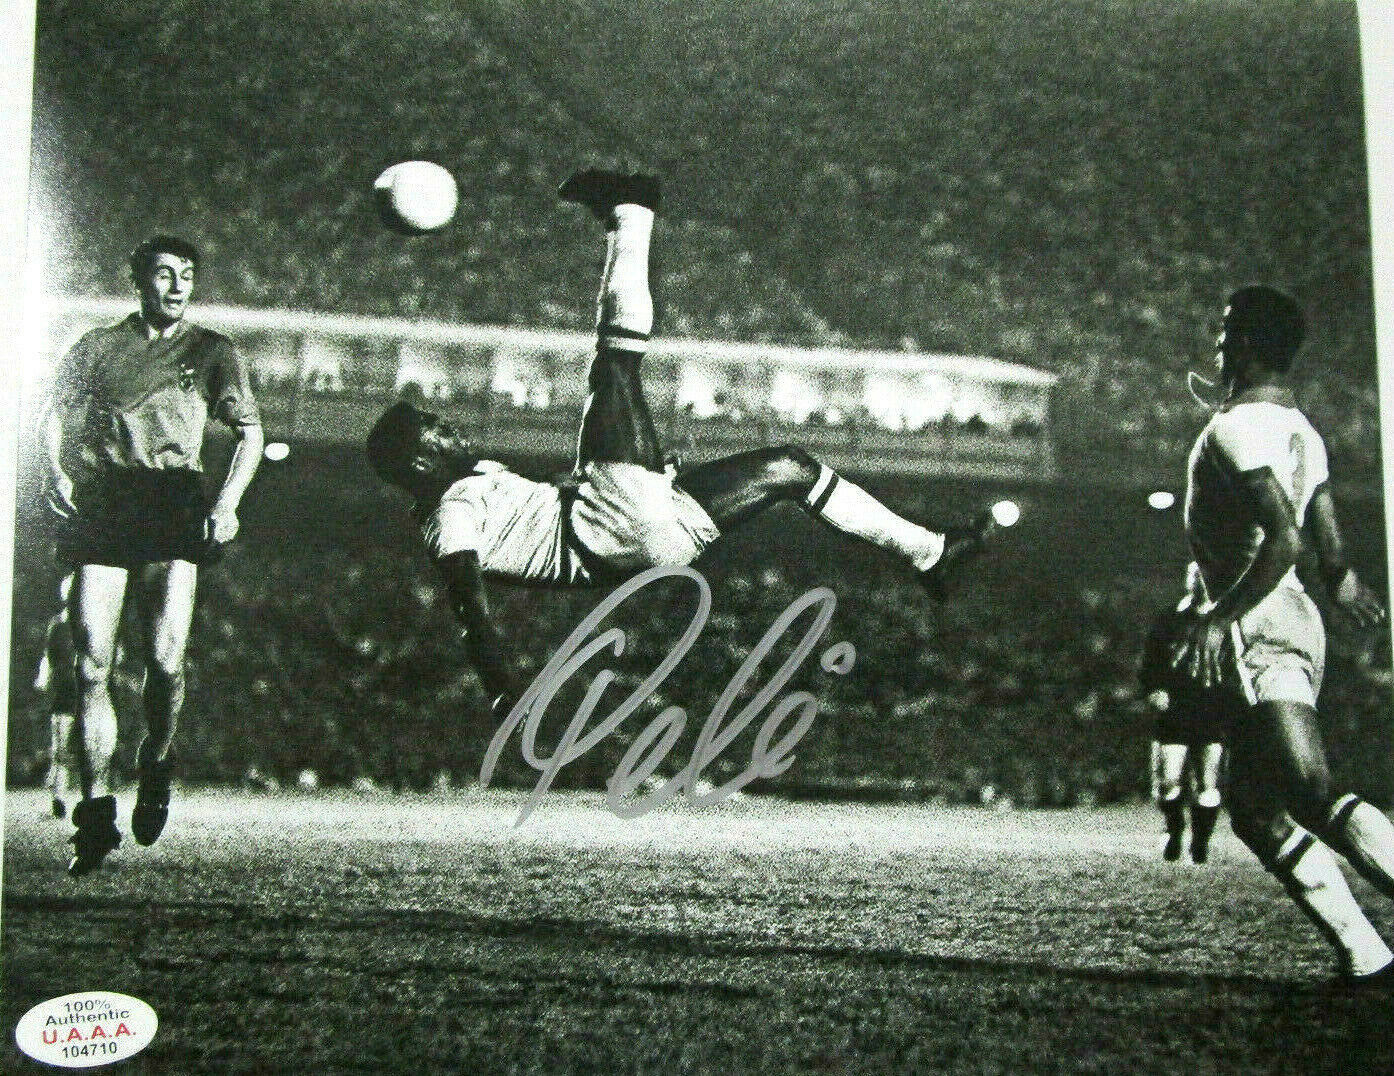 PELE / WORLD SOCCER LEGEND / AUTOGRAPHED 8X10 BLACK AND WHITE ACTION PHOTO / COA